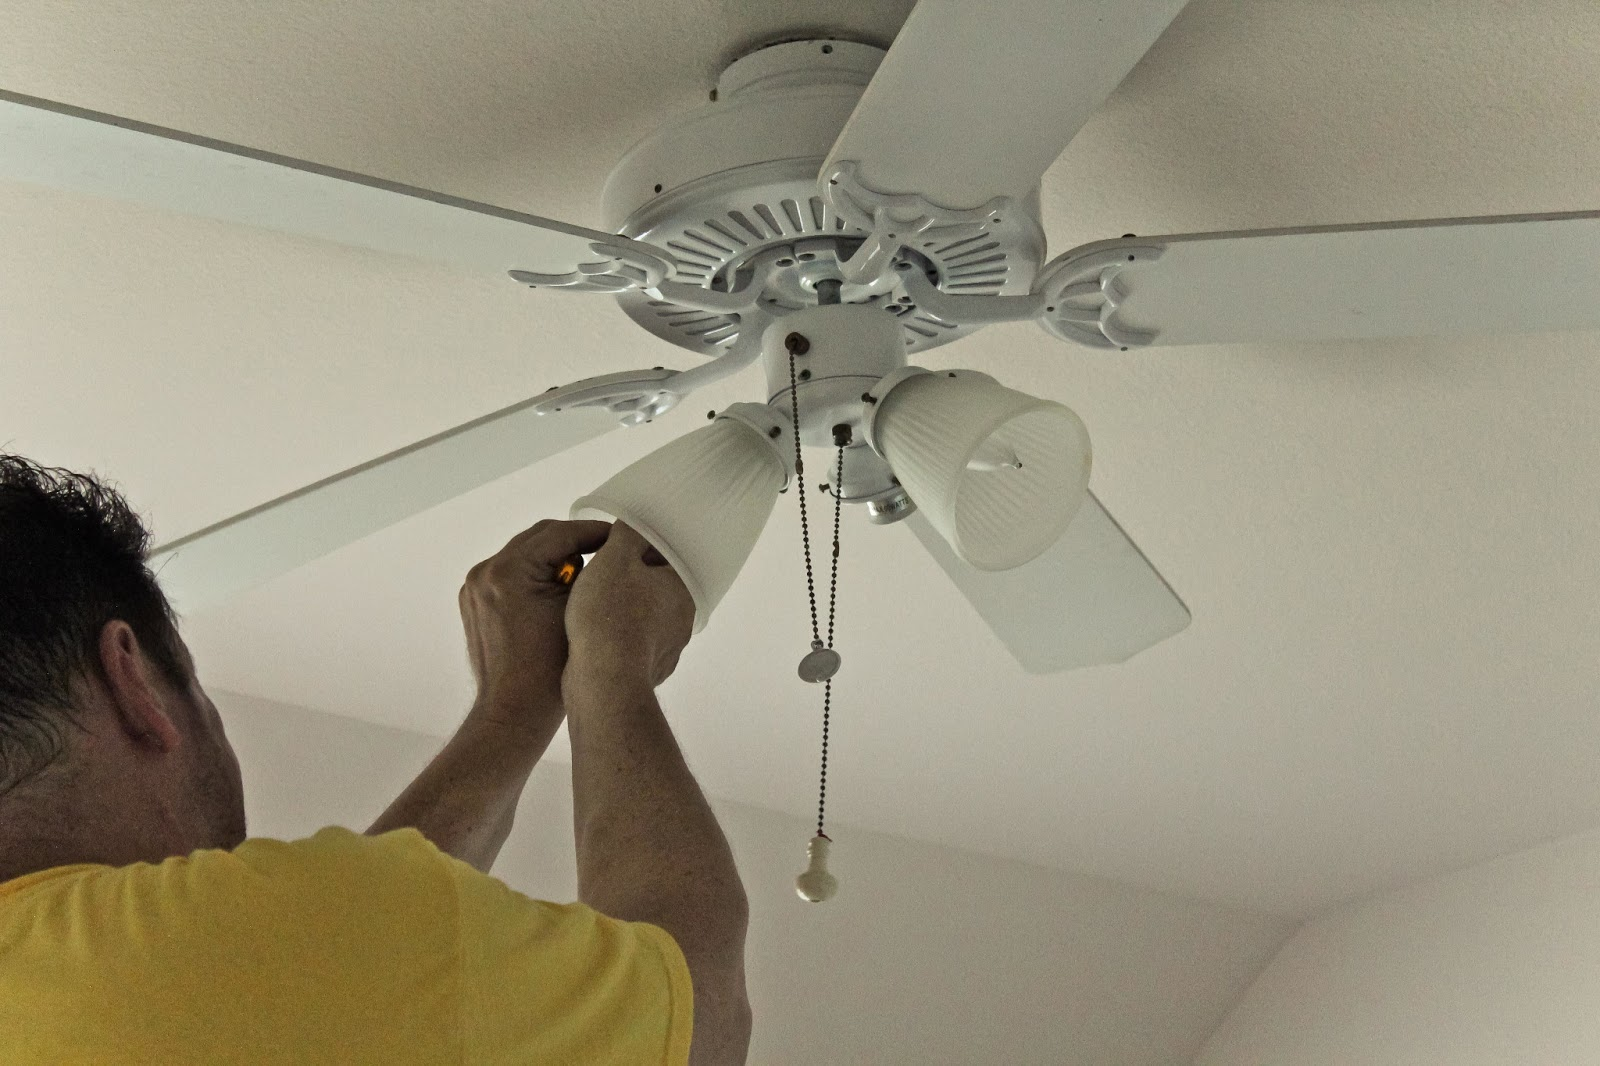 Up To 23 Of Cooling Costs Can Be Saved With Ceiling Fans